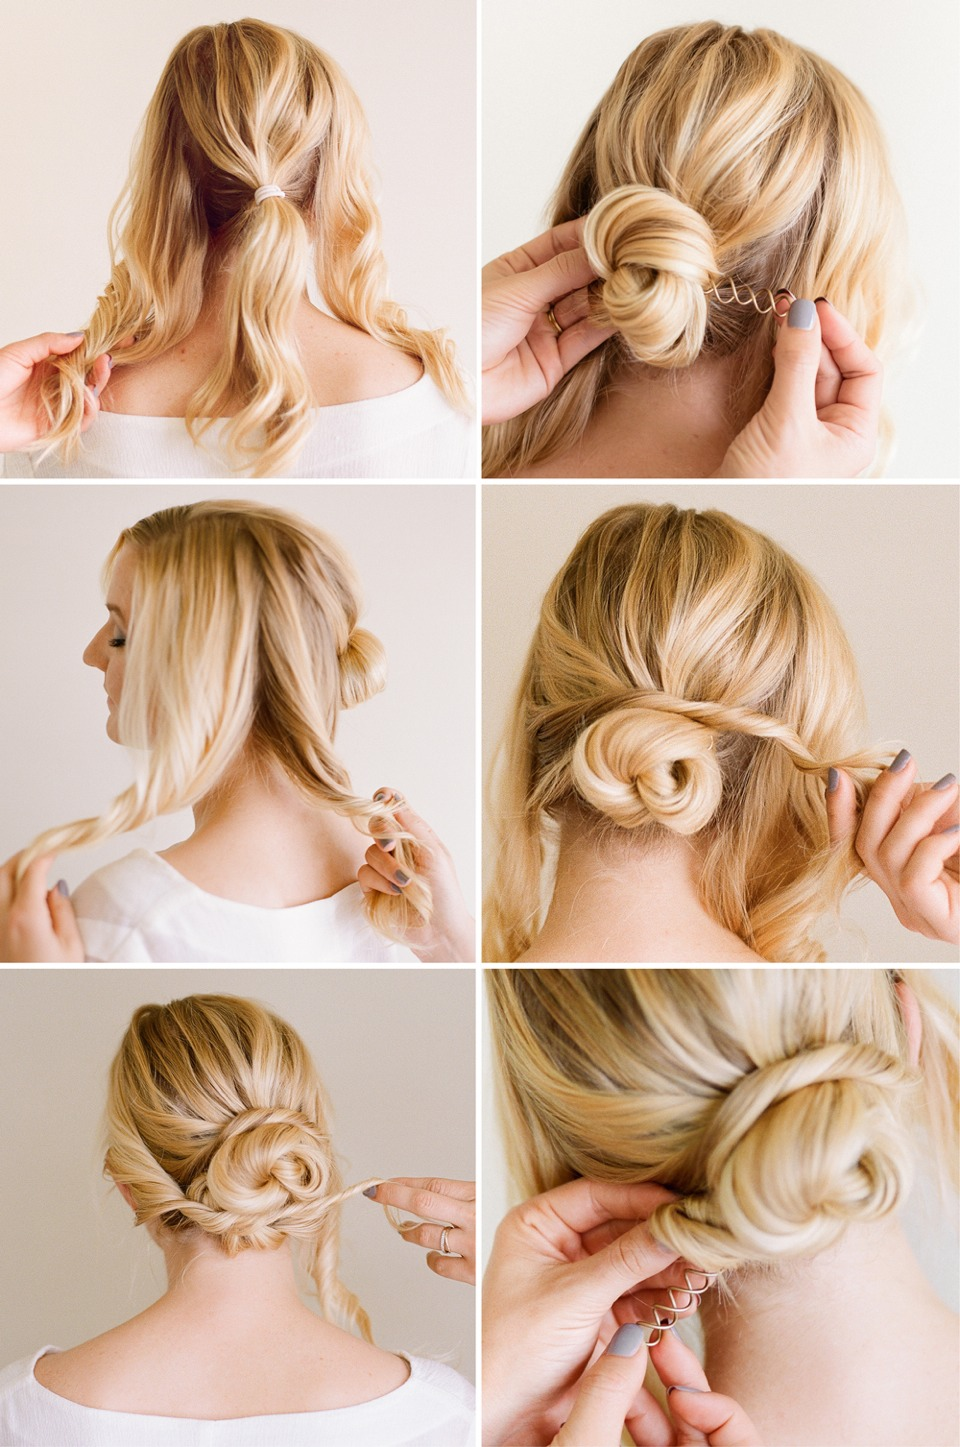 Add texture to the hair by spraying dry shampoo in roots and let it set in a minute. Then divide hair in two sections as if you were doing a half updo. Tease the underneath and smooth the front. This will give a nice lift.